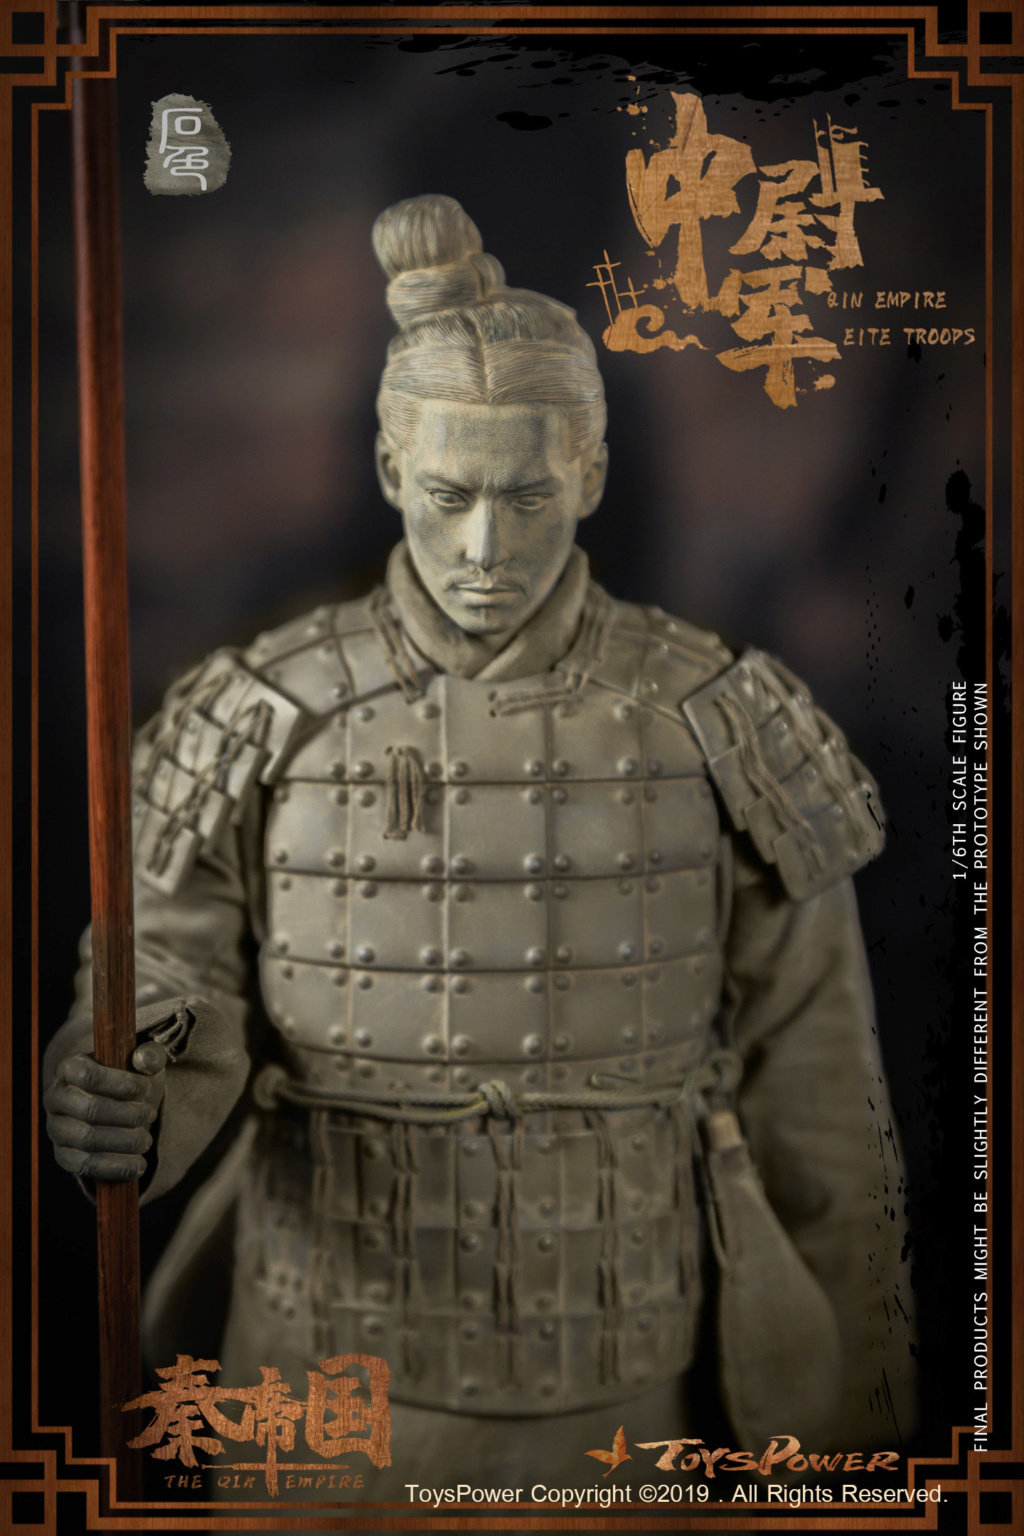 Army - NEW PRODUCT: Toyspower: 1/6 Qin Empire Lieutenant Army (Terracotta Warriors) movable doll CT012# (update armor piece drawing) 17412310